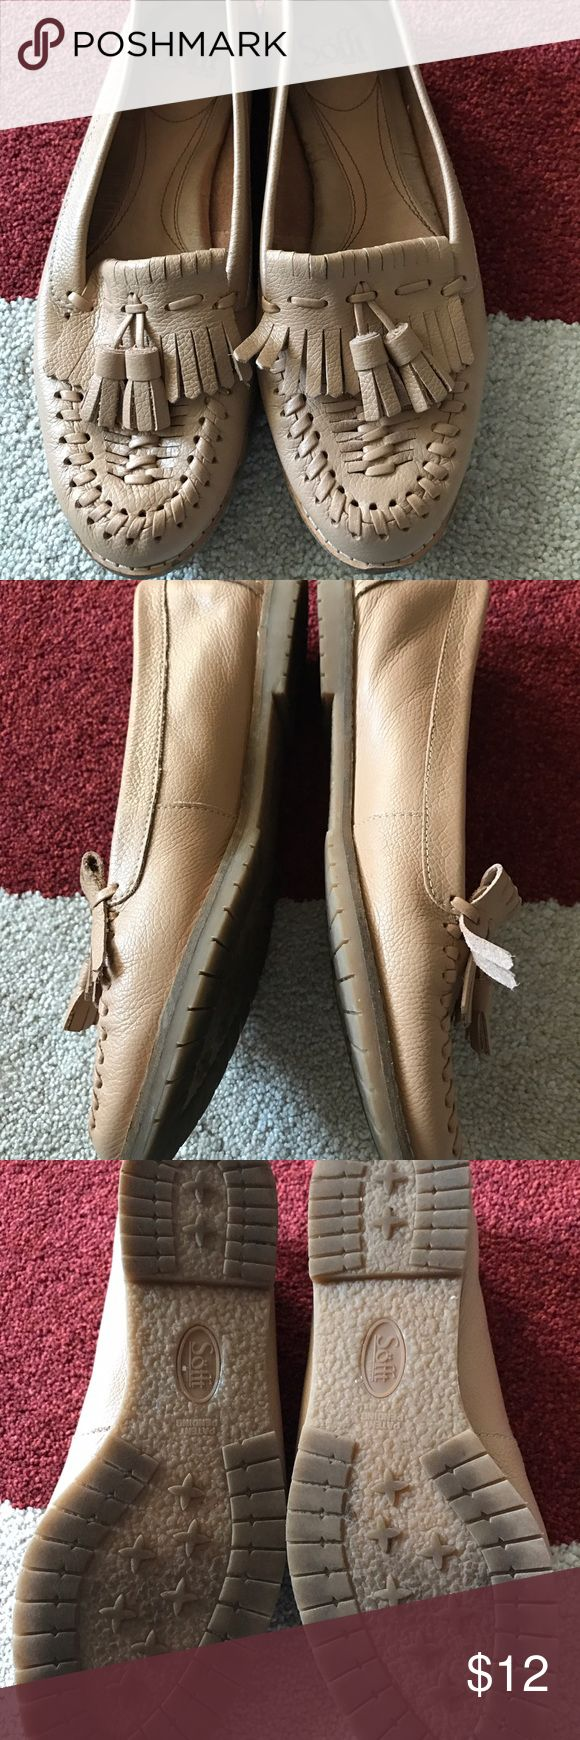 Sofft Size 7 tan loafer This is a great brand for comfort. Excellent condition. I just don't wear them like I thought I would. Tan. Leather. Please zoom in on the pics. No issues that I can see. Size 7. Sofft Shoes Flats & Loafers